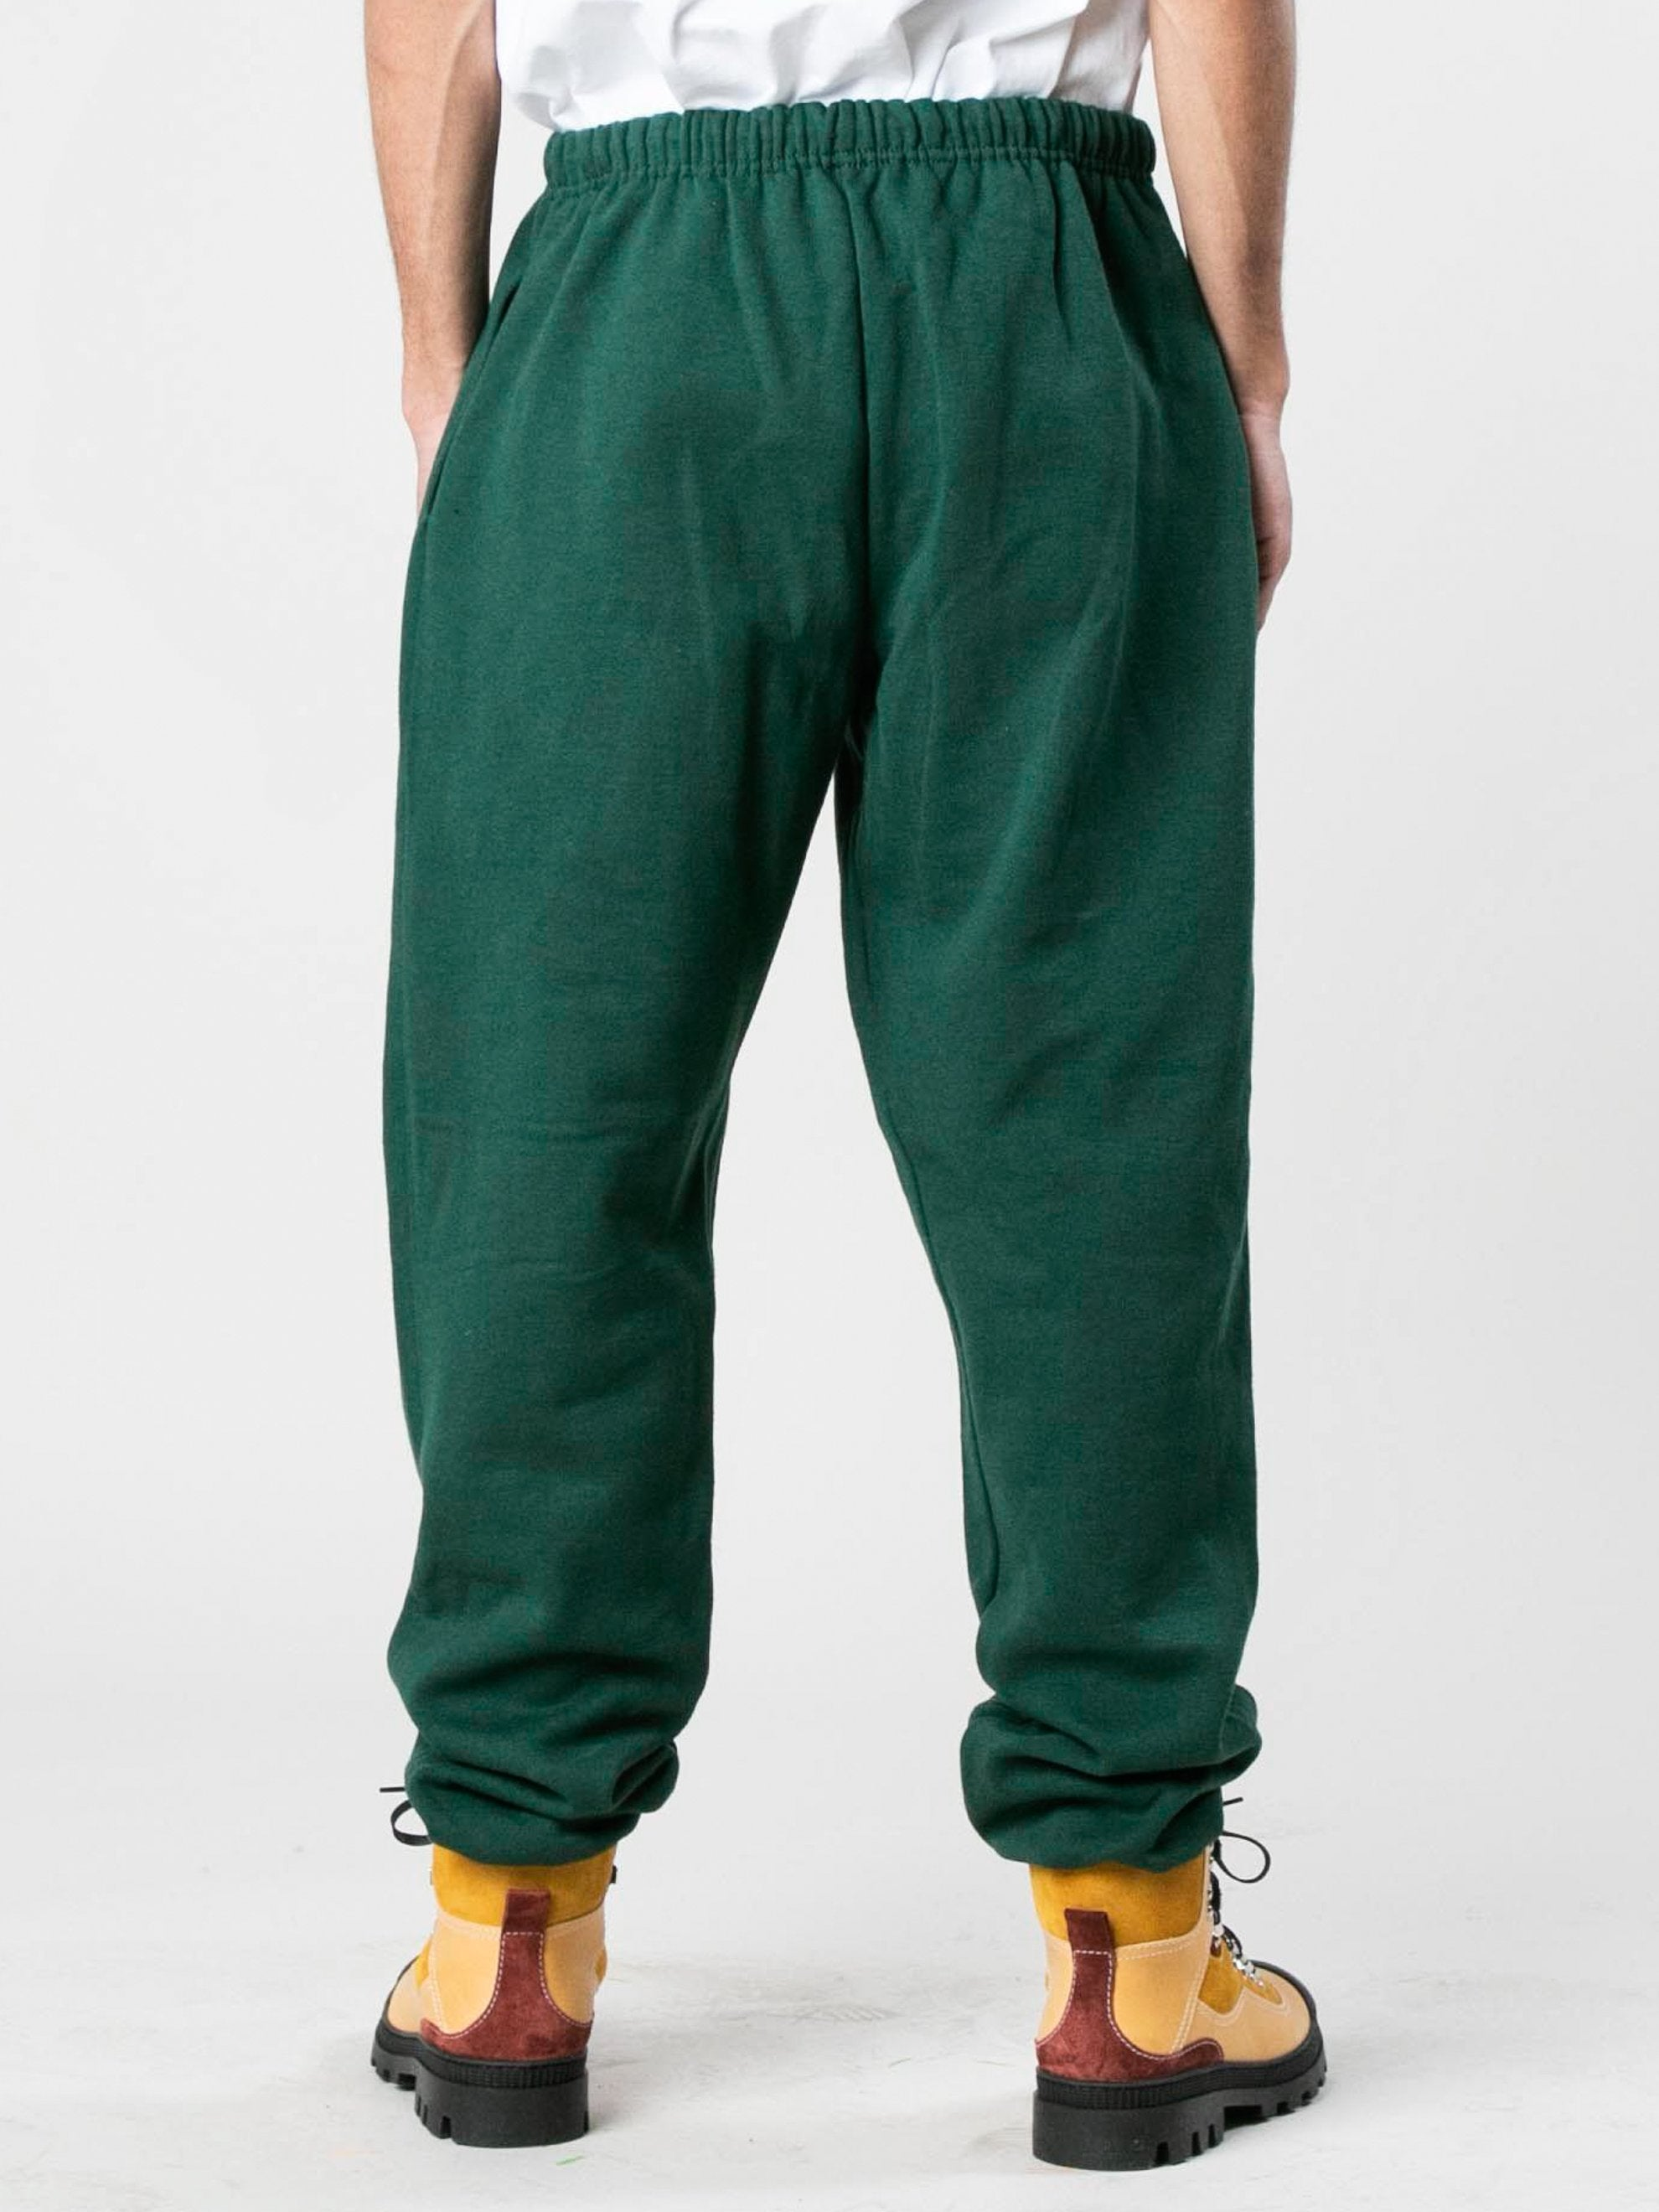 Green Caterpillar Puff Print Sweatpants 5